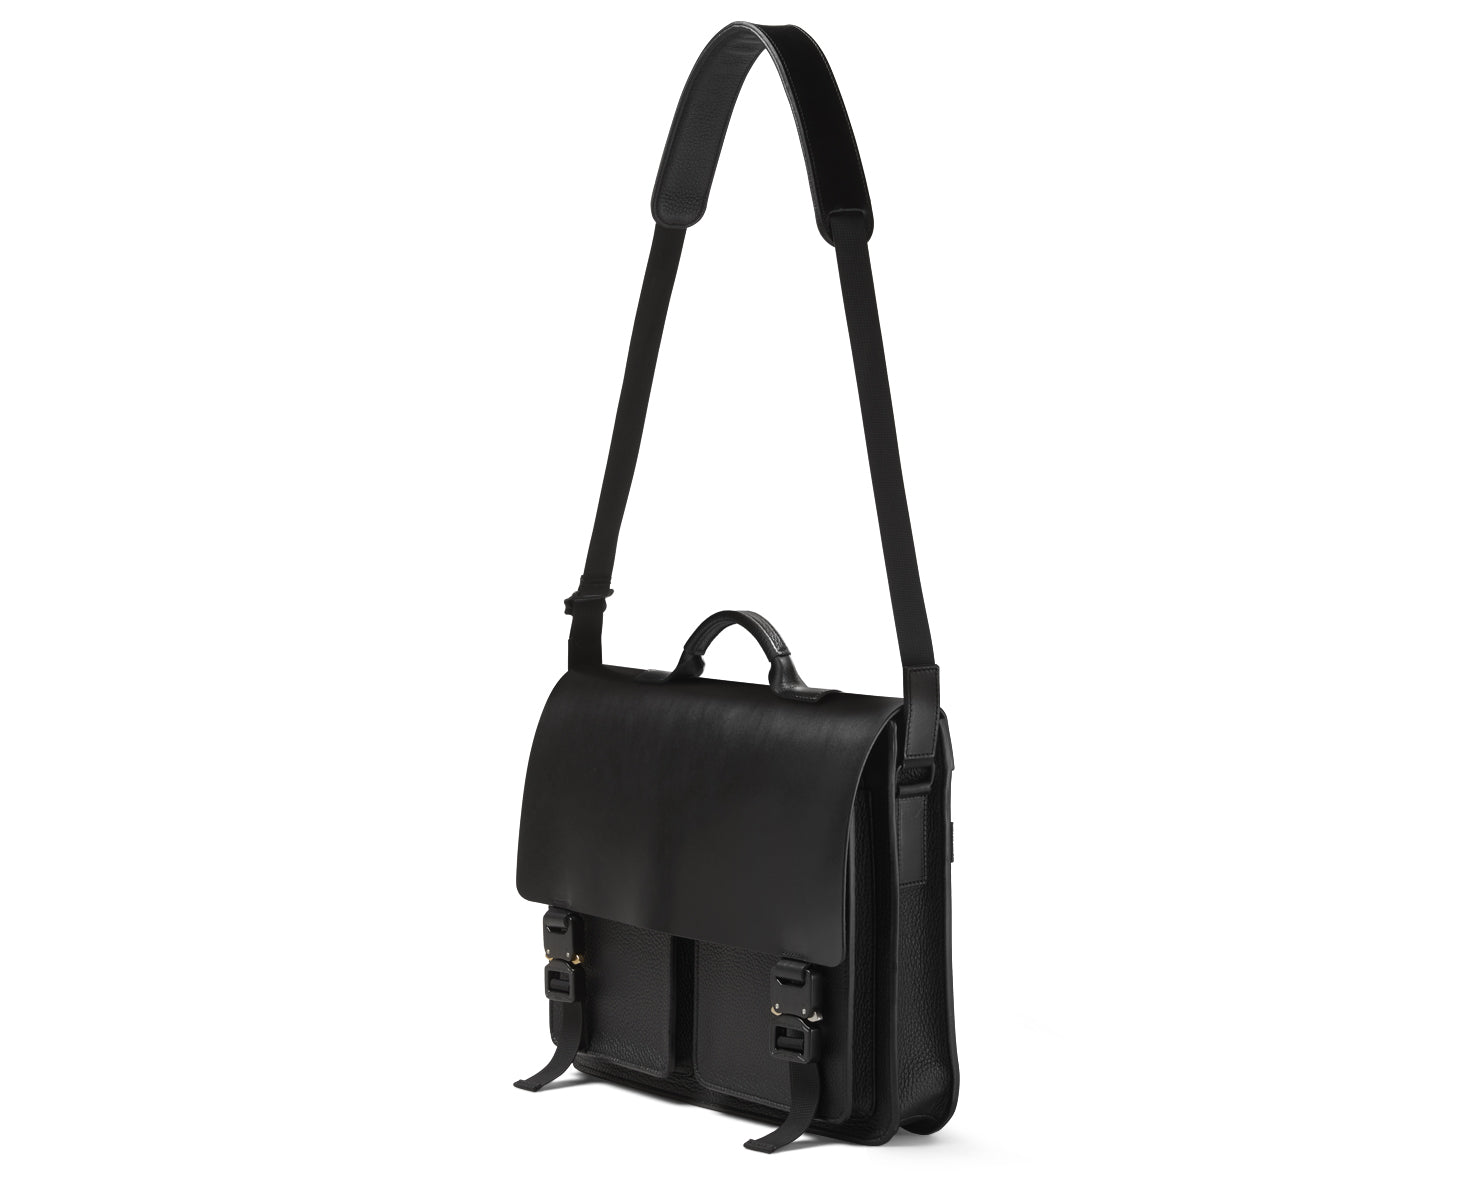 ESQUIRE BRIEFCASE | KILLSPENCER® - Black Leather